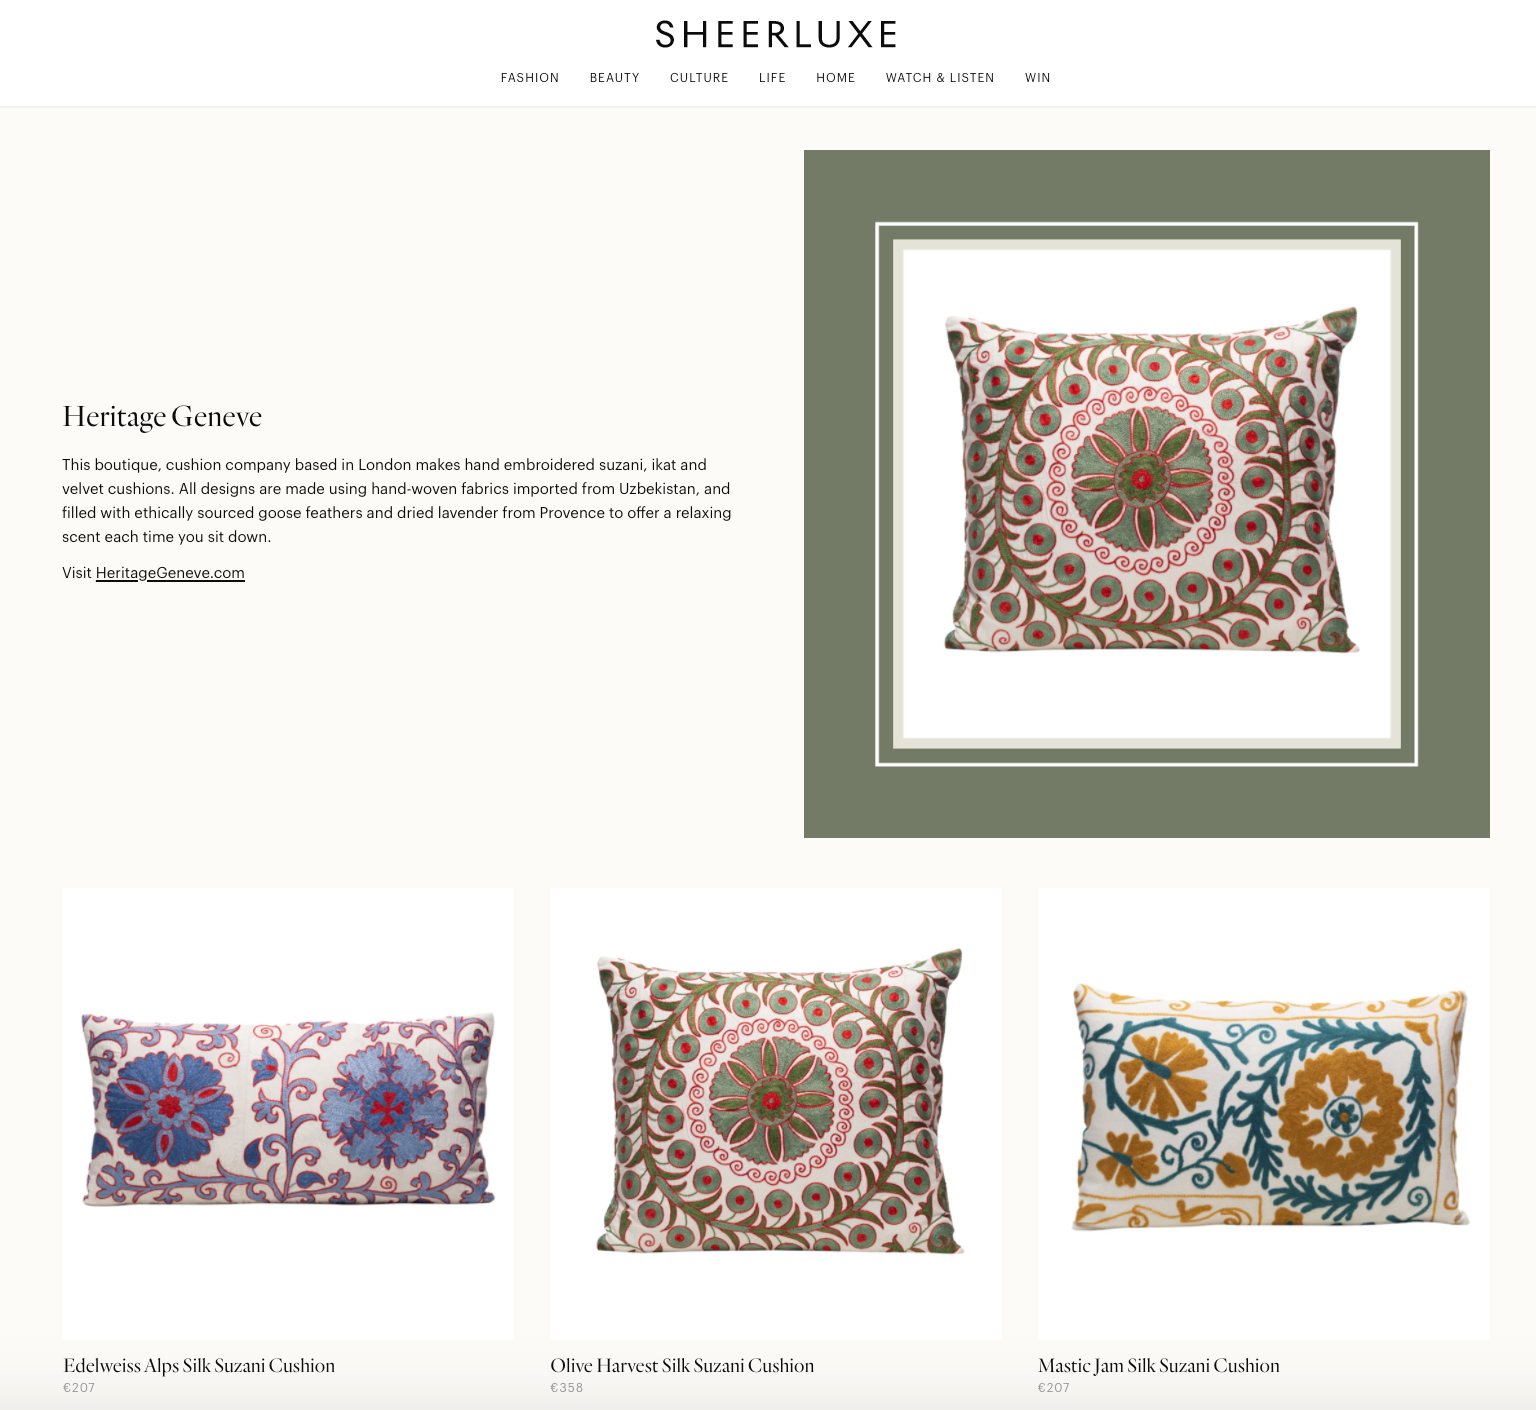 heritage geneve interiors what's new this month